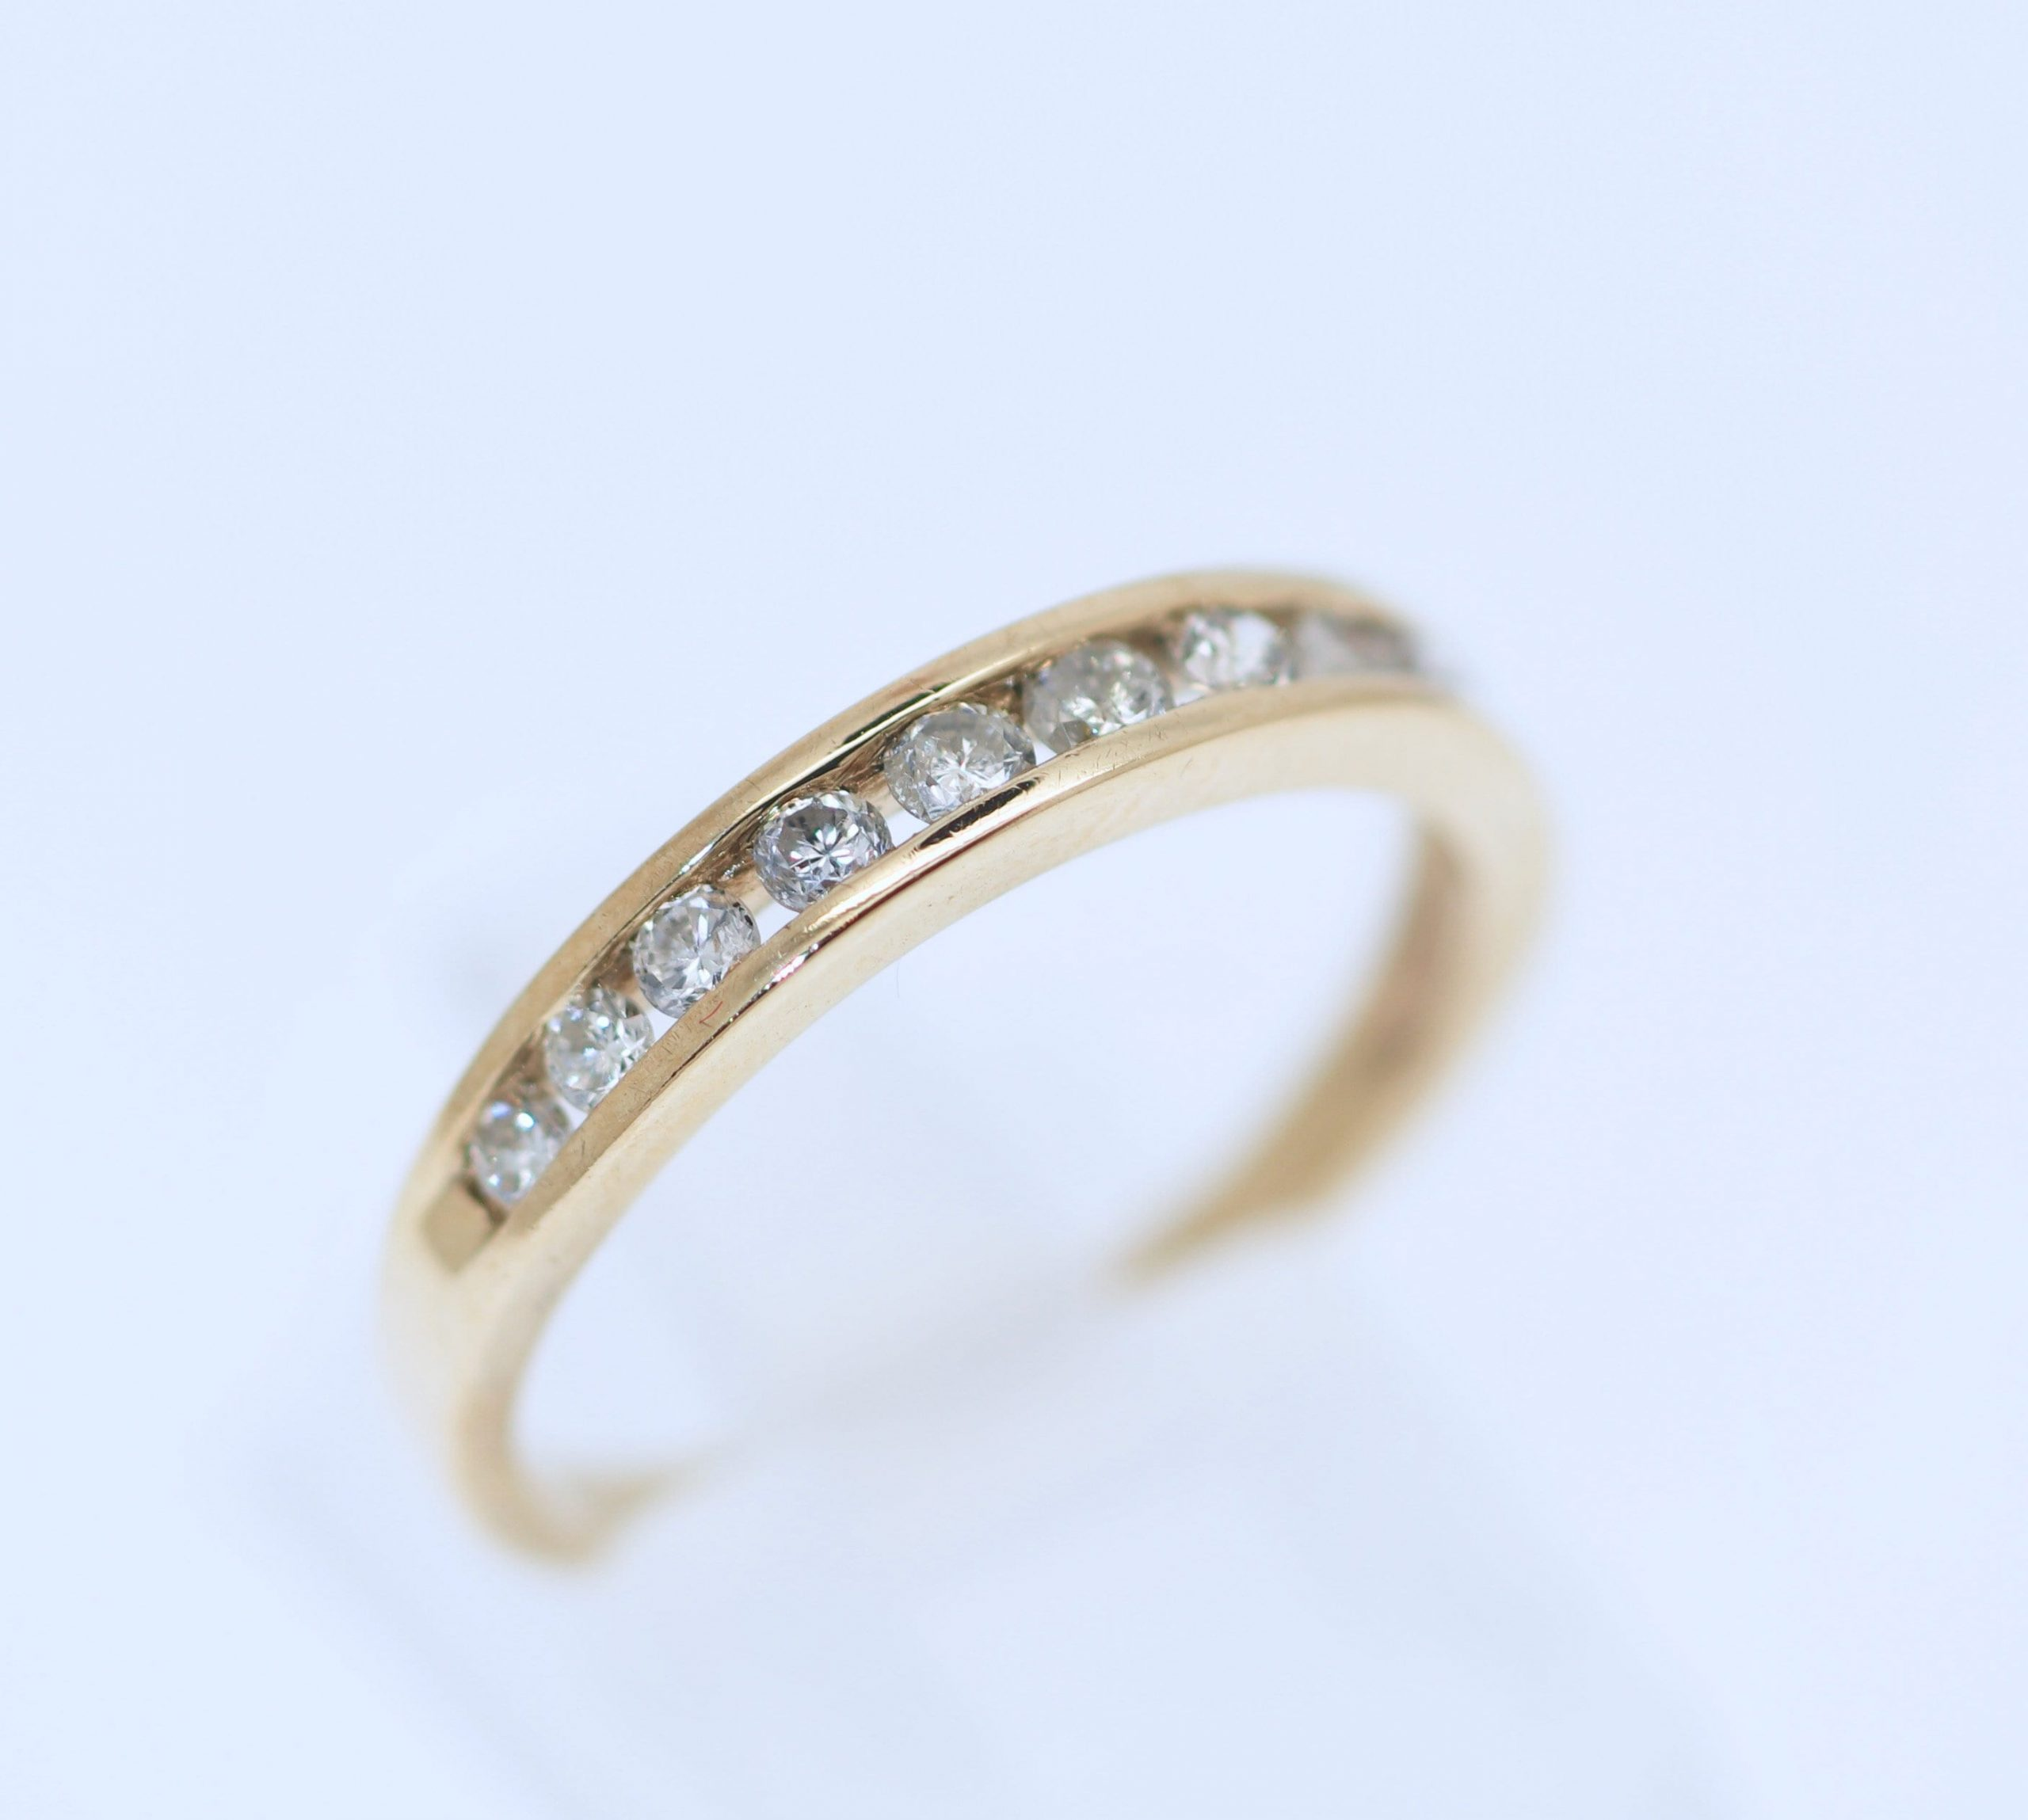 A Classic 9Kt Yellow Gold Lady's Natural Diamond Channel Set Wedding/Anniversary/stackable Band Jewellery .50Ct Size 8 P